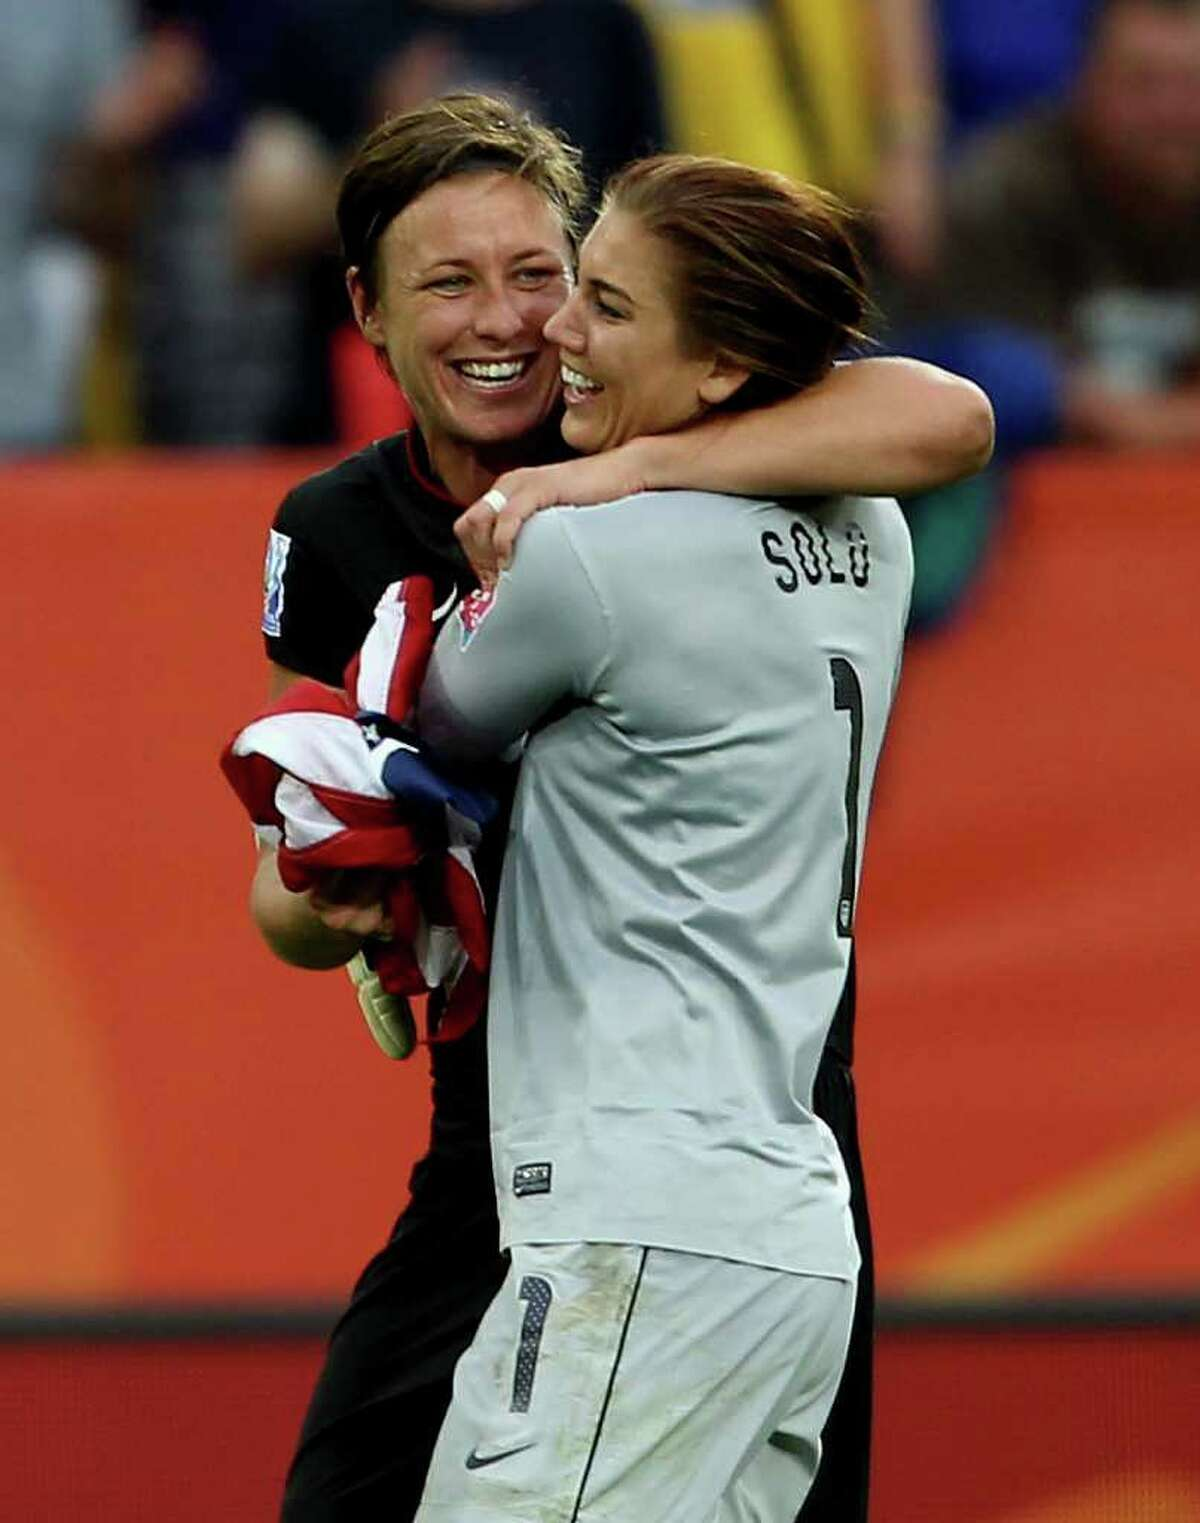 DRESDEN, GERMANY - JULY 10: Hope Solo of USA (R) celebrates with Abby Wambach after victory in the penalty shoot out during the Women's World Cup Quarter Final match between Brazil and USA at Rudolf-Harbig Stadium on July 10, 2011 in Dresden, Germany. (Photo by Scott Heavey/Getty Images)